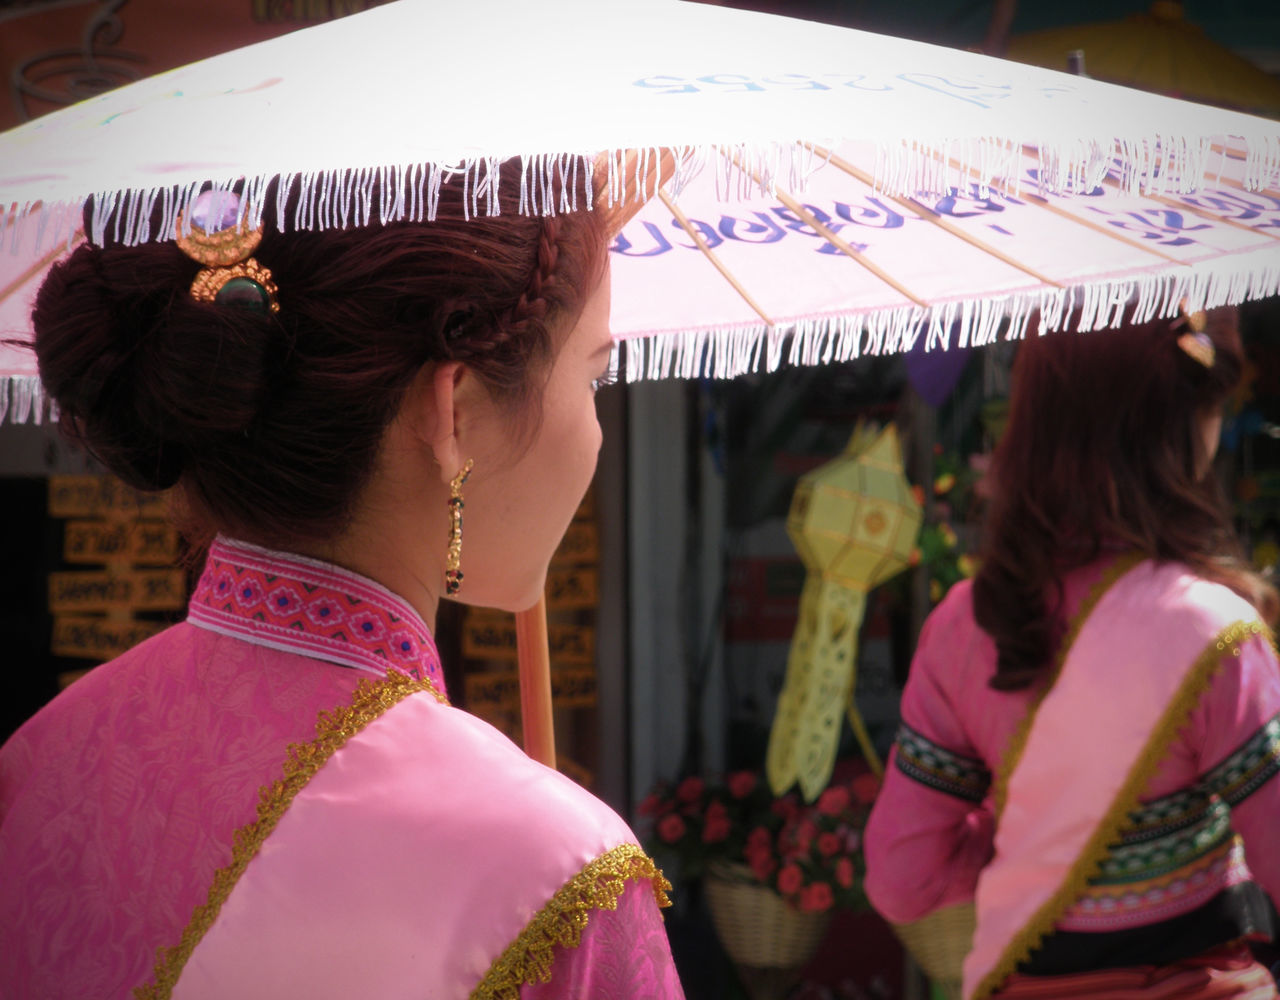 Beauty Beauty Contest Colour Colourful Focus On Foreground Head And Shoulders Incidental People Rear View Spotted In Thailand Standing Thai Thailand Umbrella Waist Up Young Women Telling Stories Differently